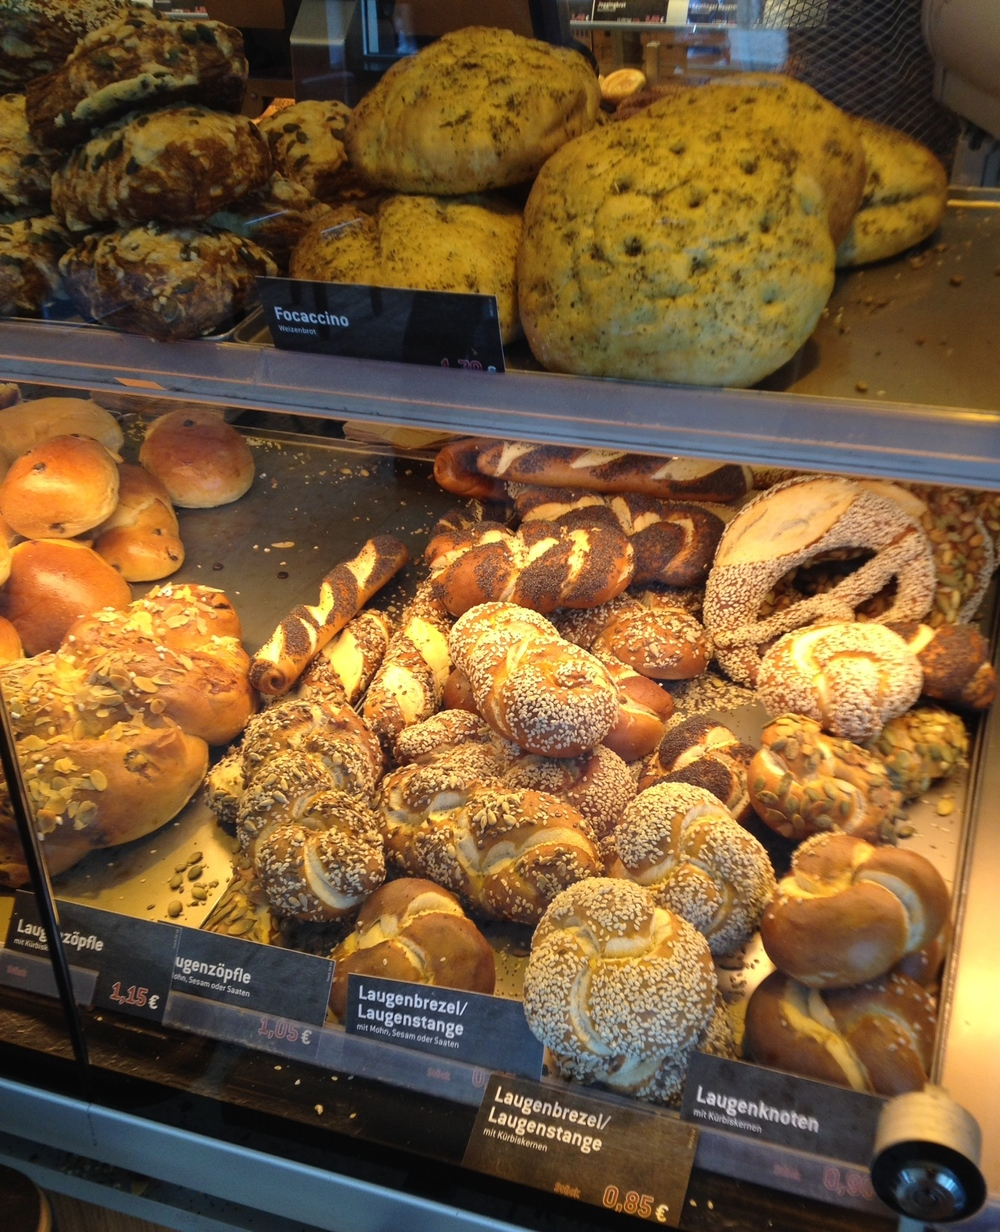 Rolls and loaves of bread for sale in a bakery window